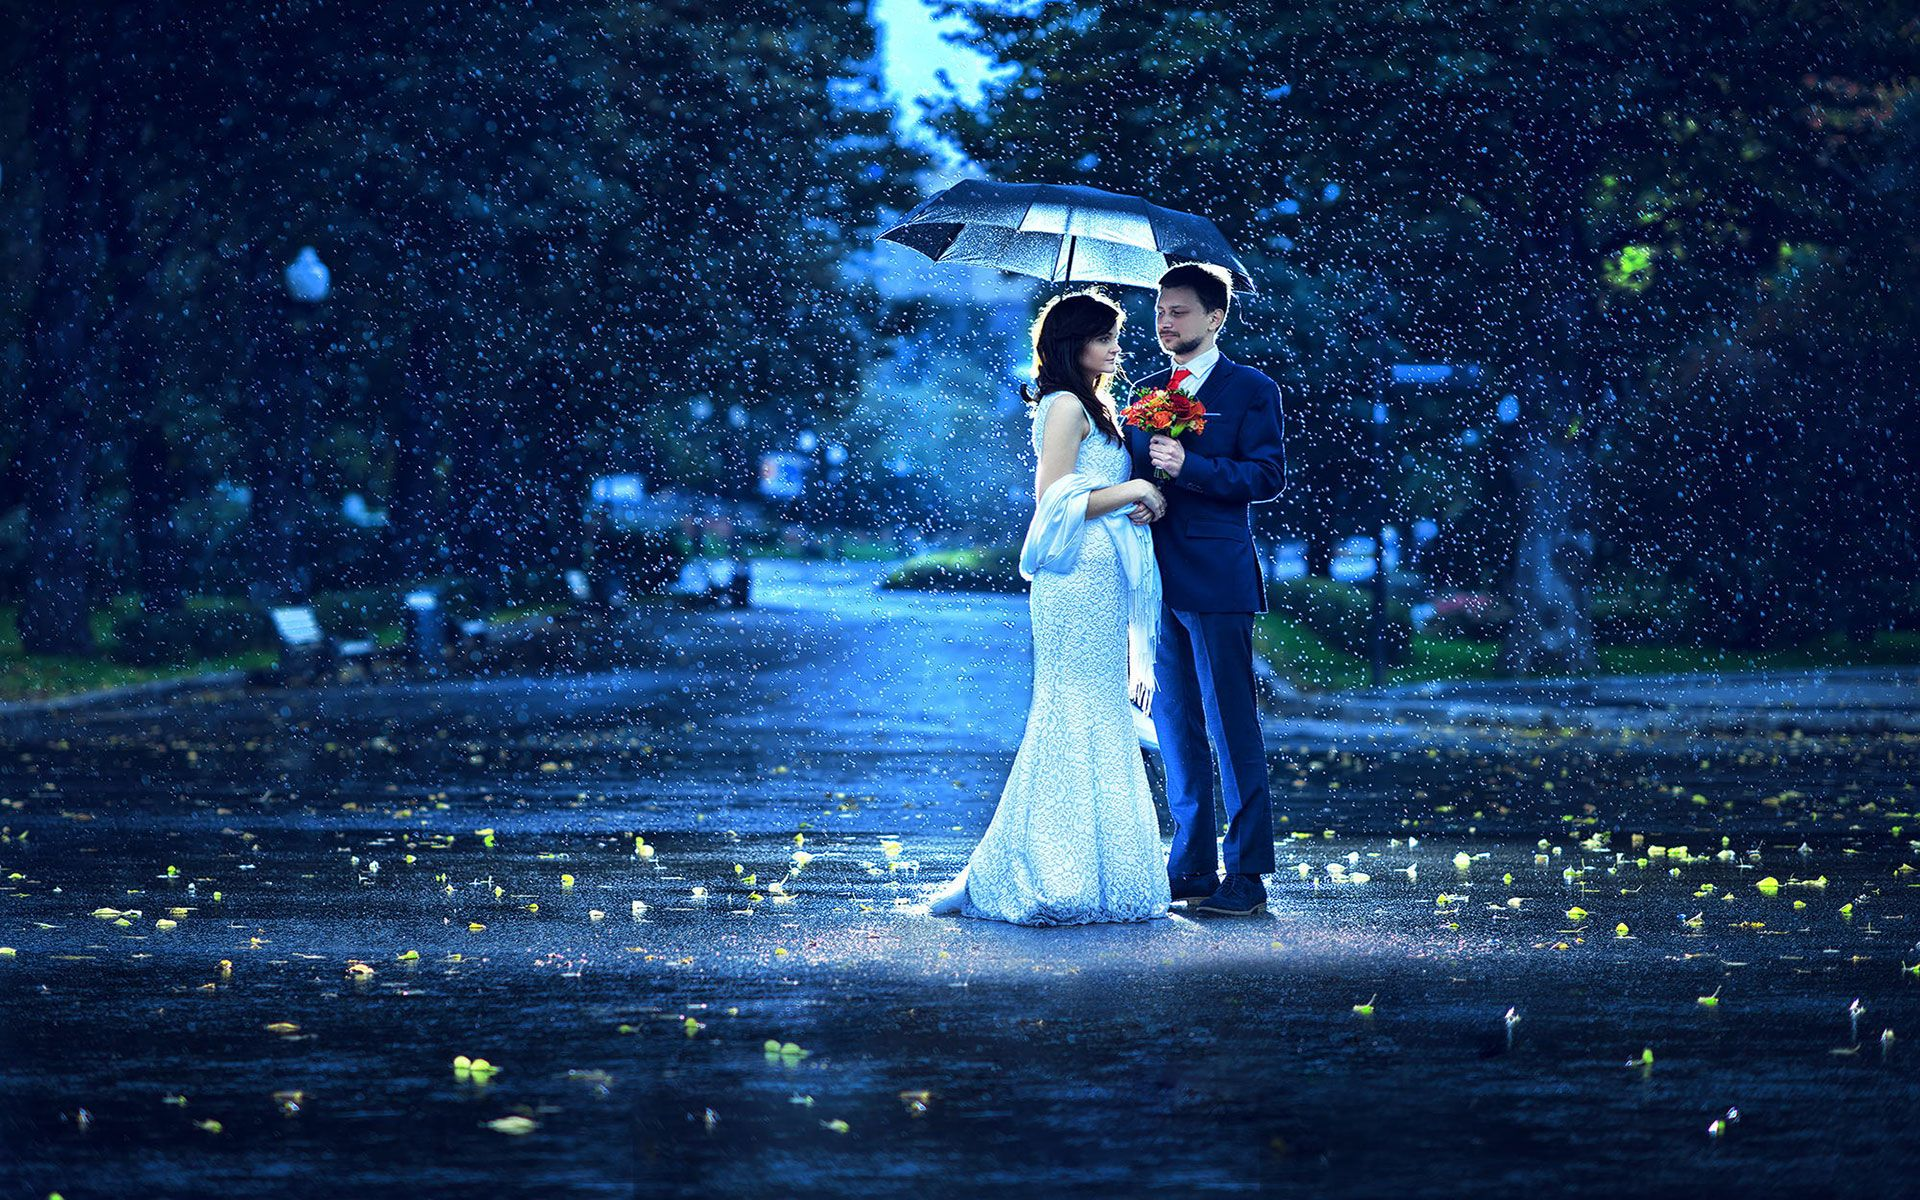 Sweet Couple Giving Flower In A Rainy Morning In 2020 Rain Photography Rainy Wedding Couple In Rain